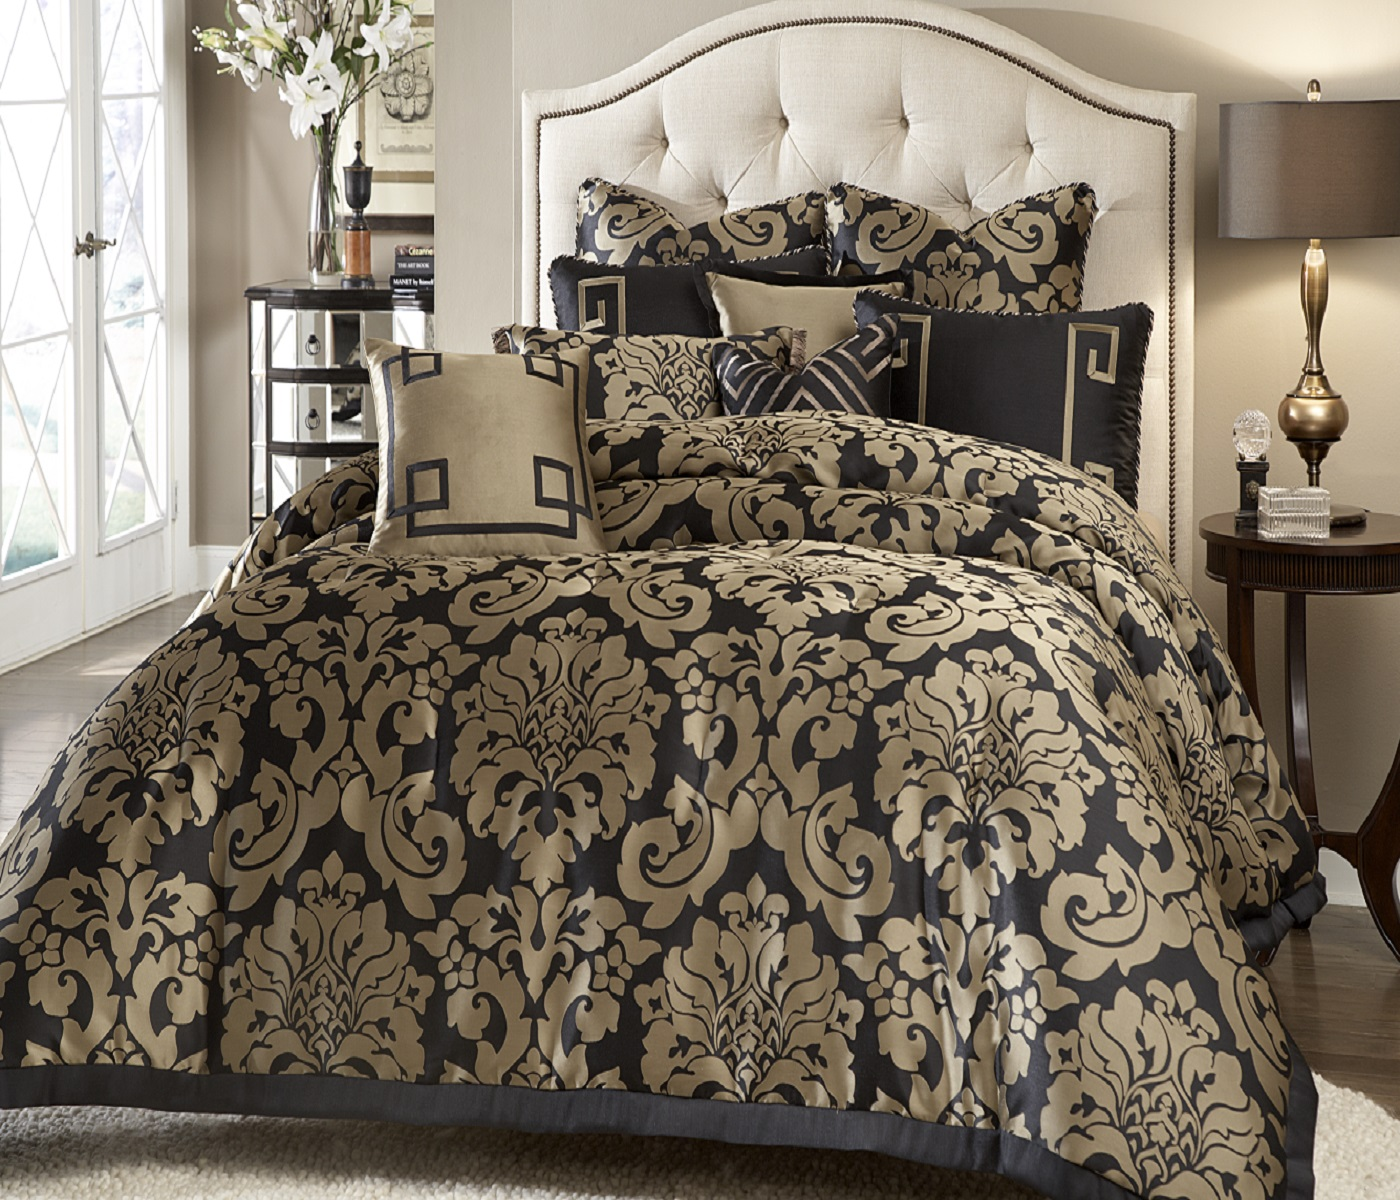 Bedroom Furniture Styles Black And Gold Bedding Sets For Adding Luxurious Bedroom